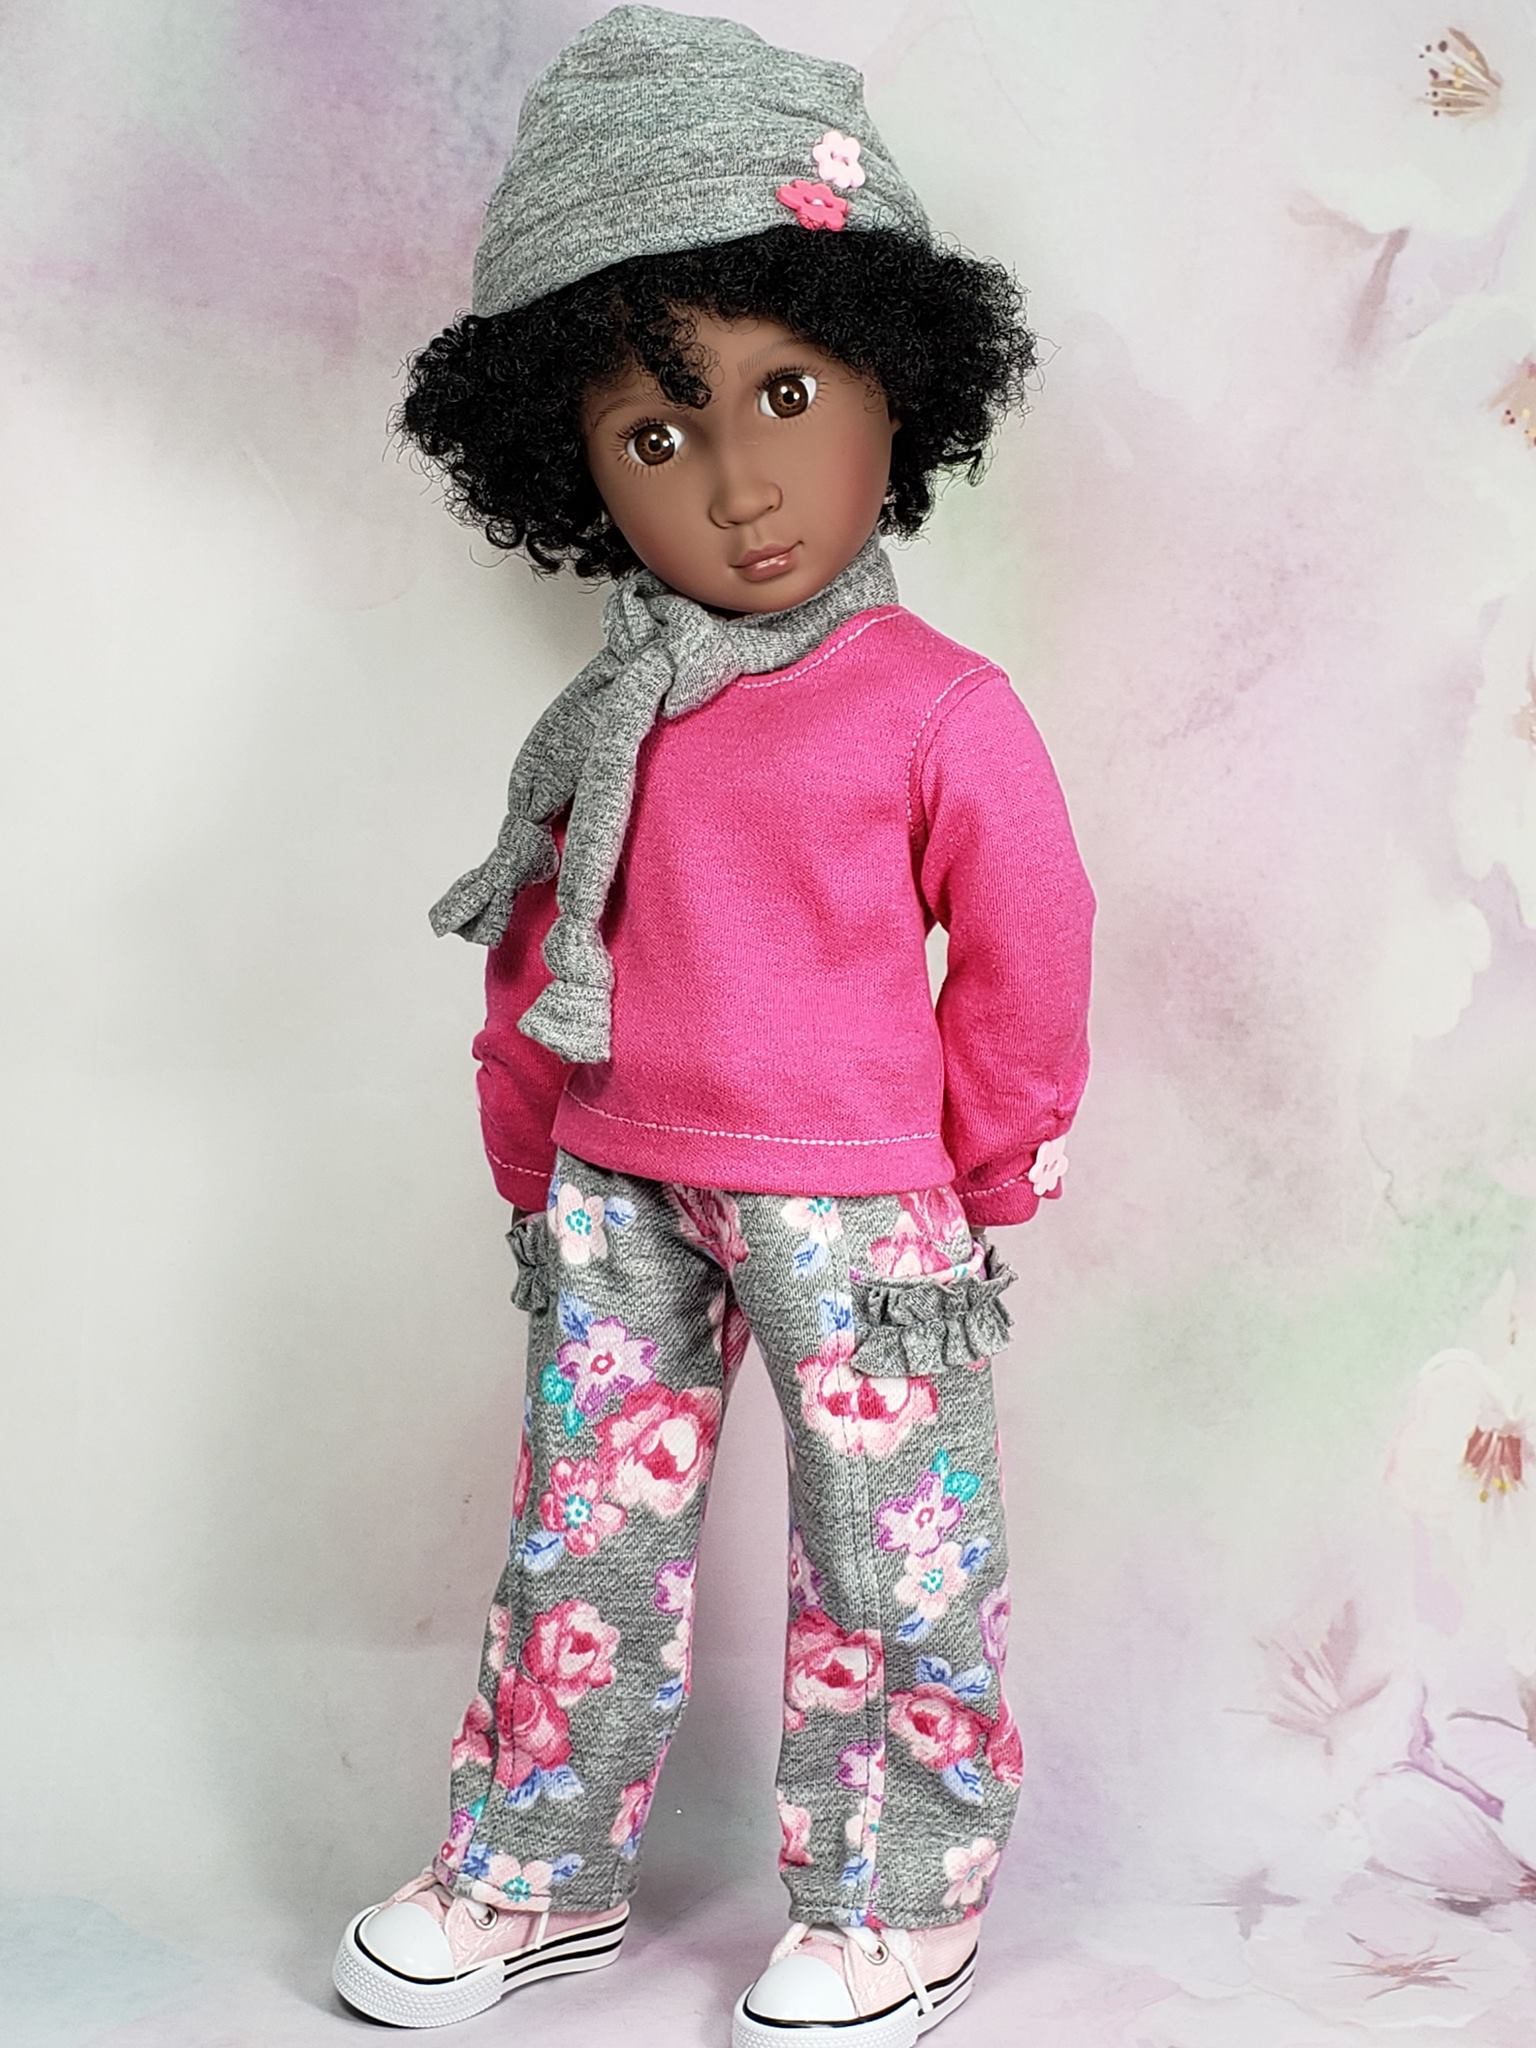 Make a simple pair of pants for your A Girl for All Time Doll with the easy Playground Pants PDF Sewing Pattern by Oh Sew Kat! Other styles and sizes available on Etsy. #agirlforalltime #sewingpatterns #dollclothes #ohsewkat #bex